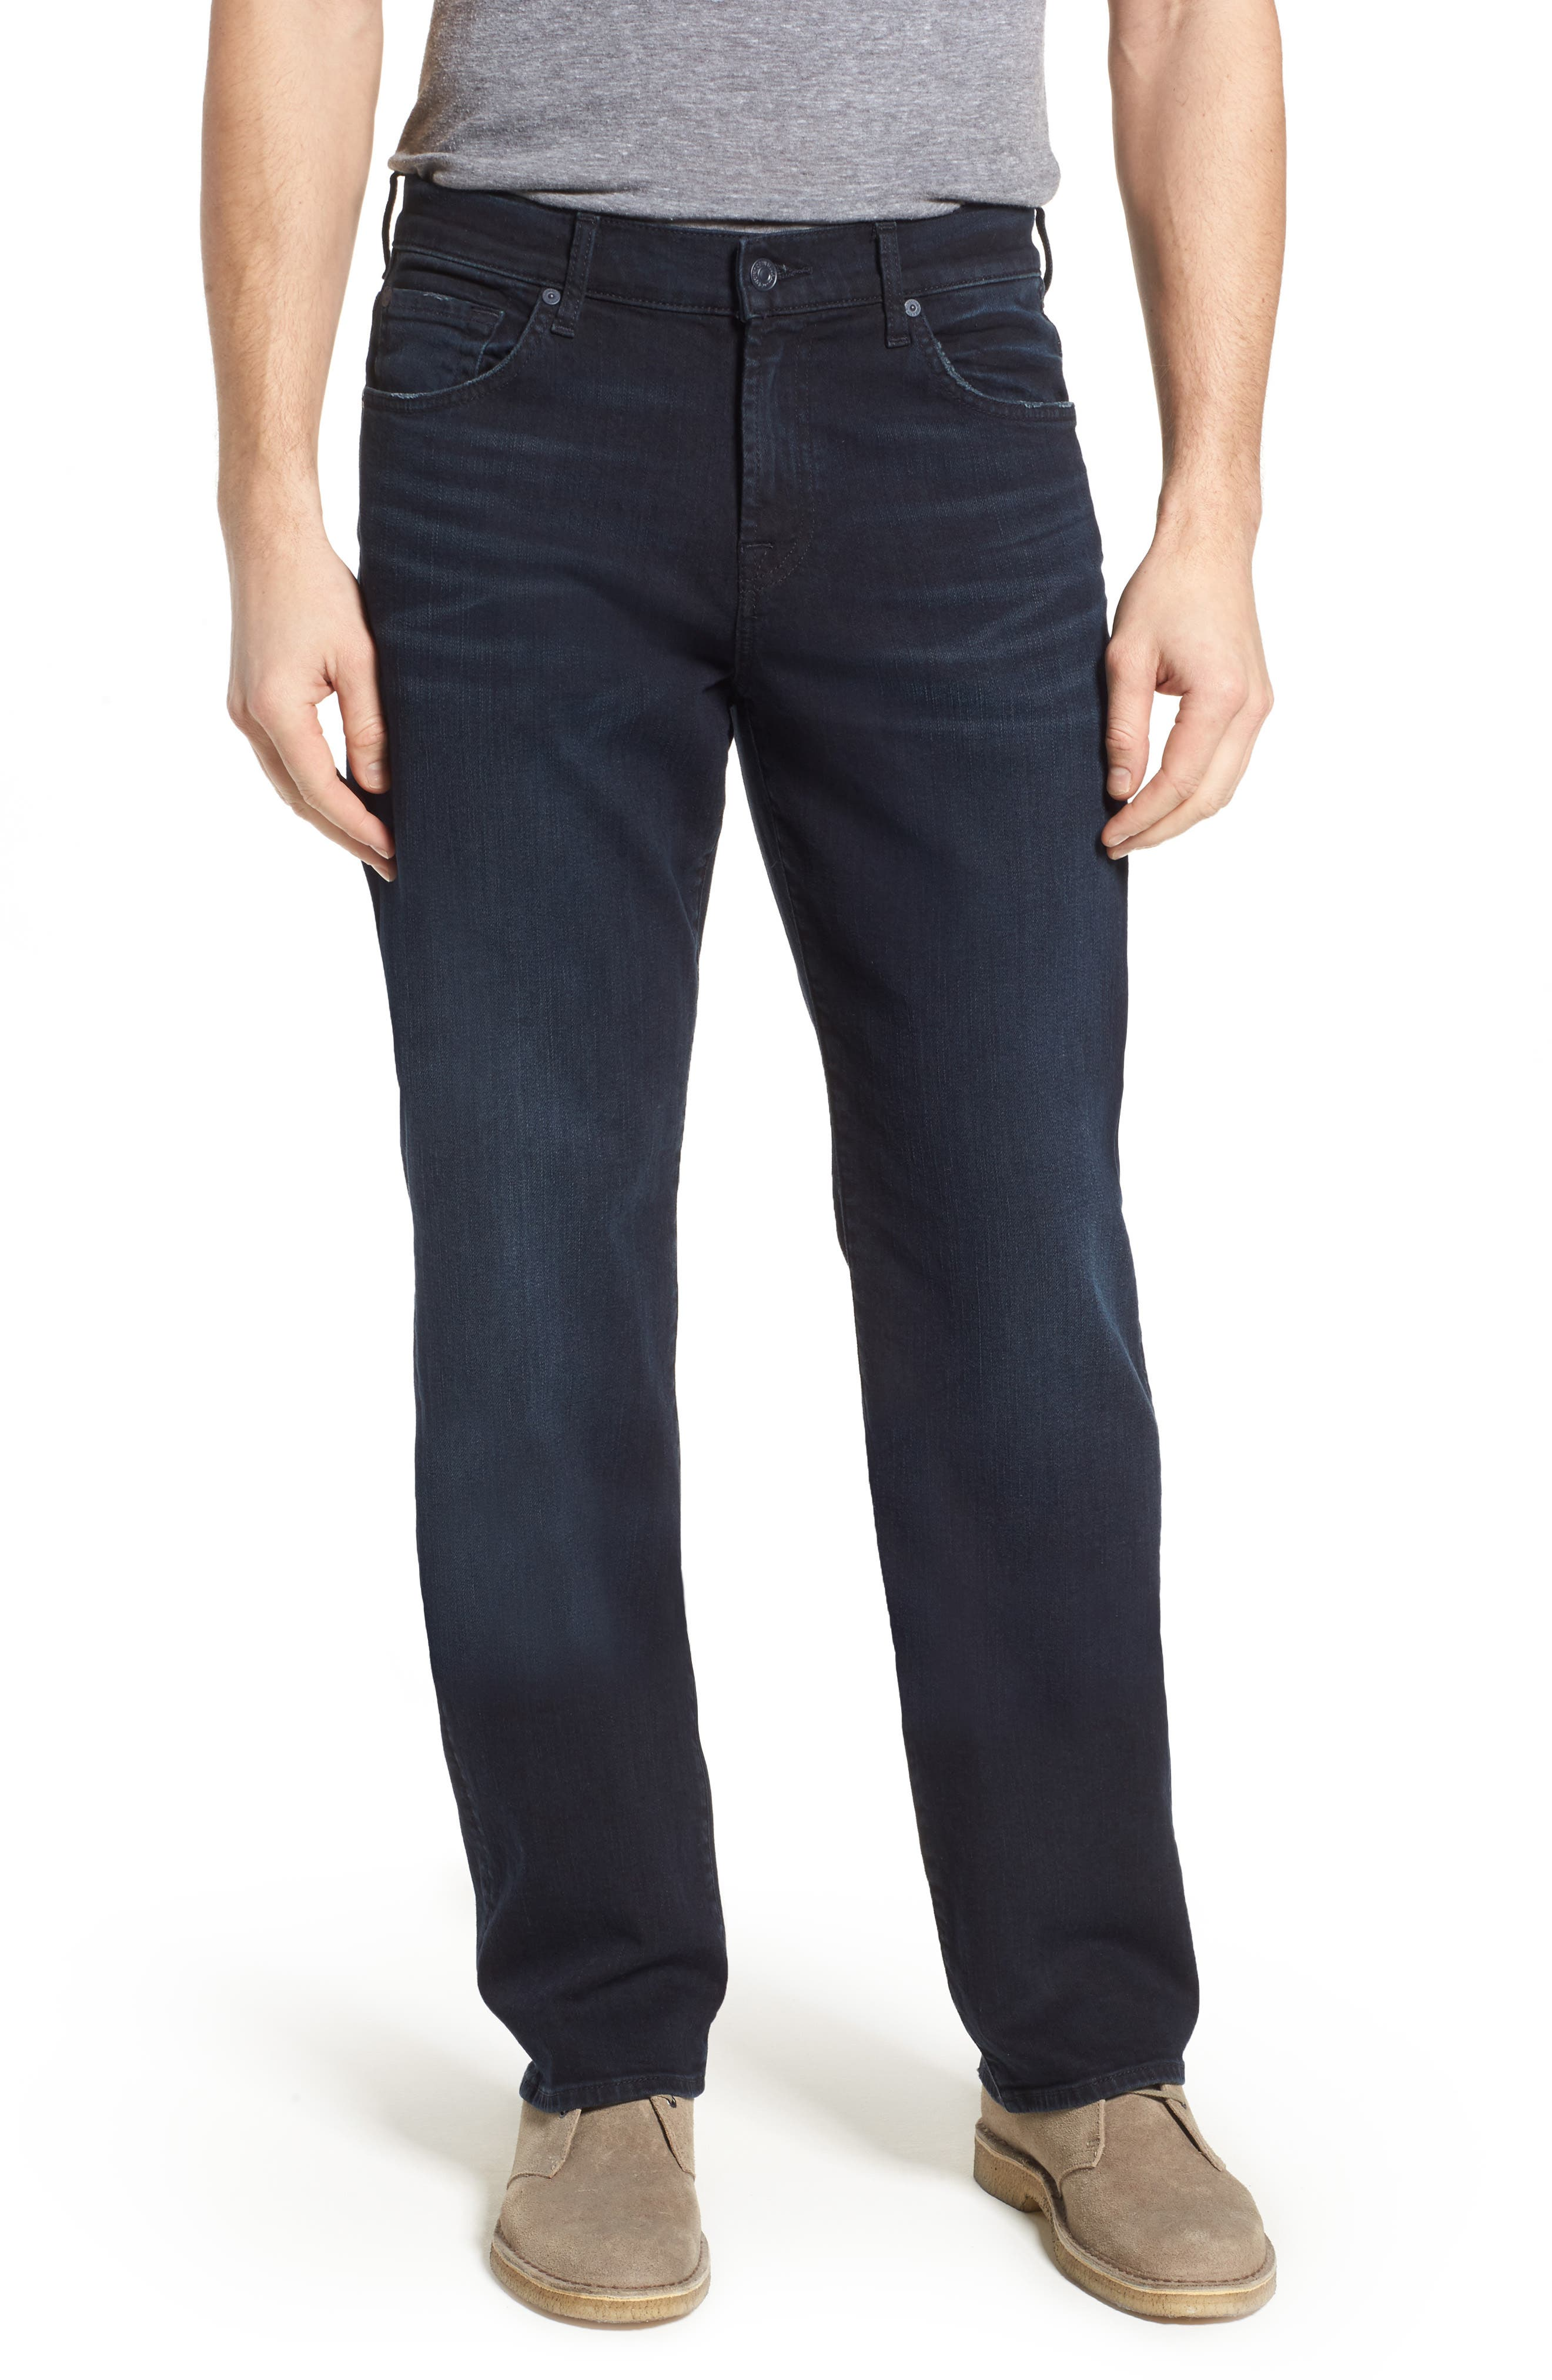 'Austyn- LuxePerformance' Relaxed Fit Jeans,                         Main,                         color, Havoc